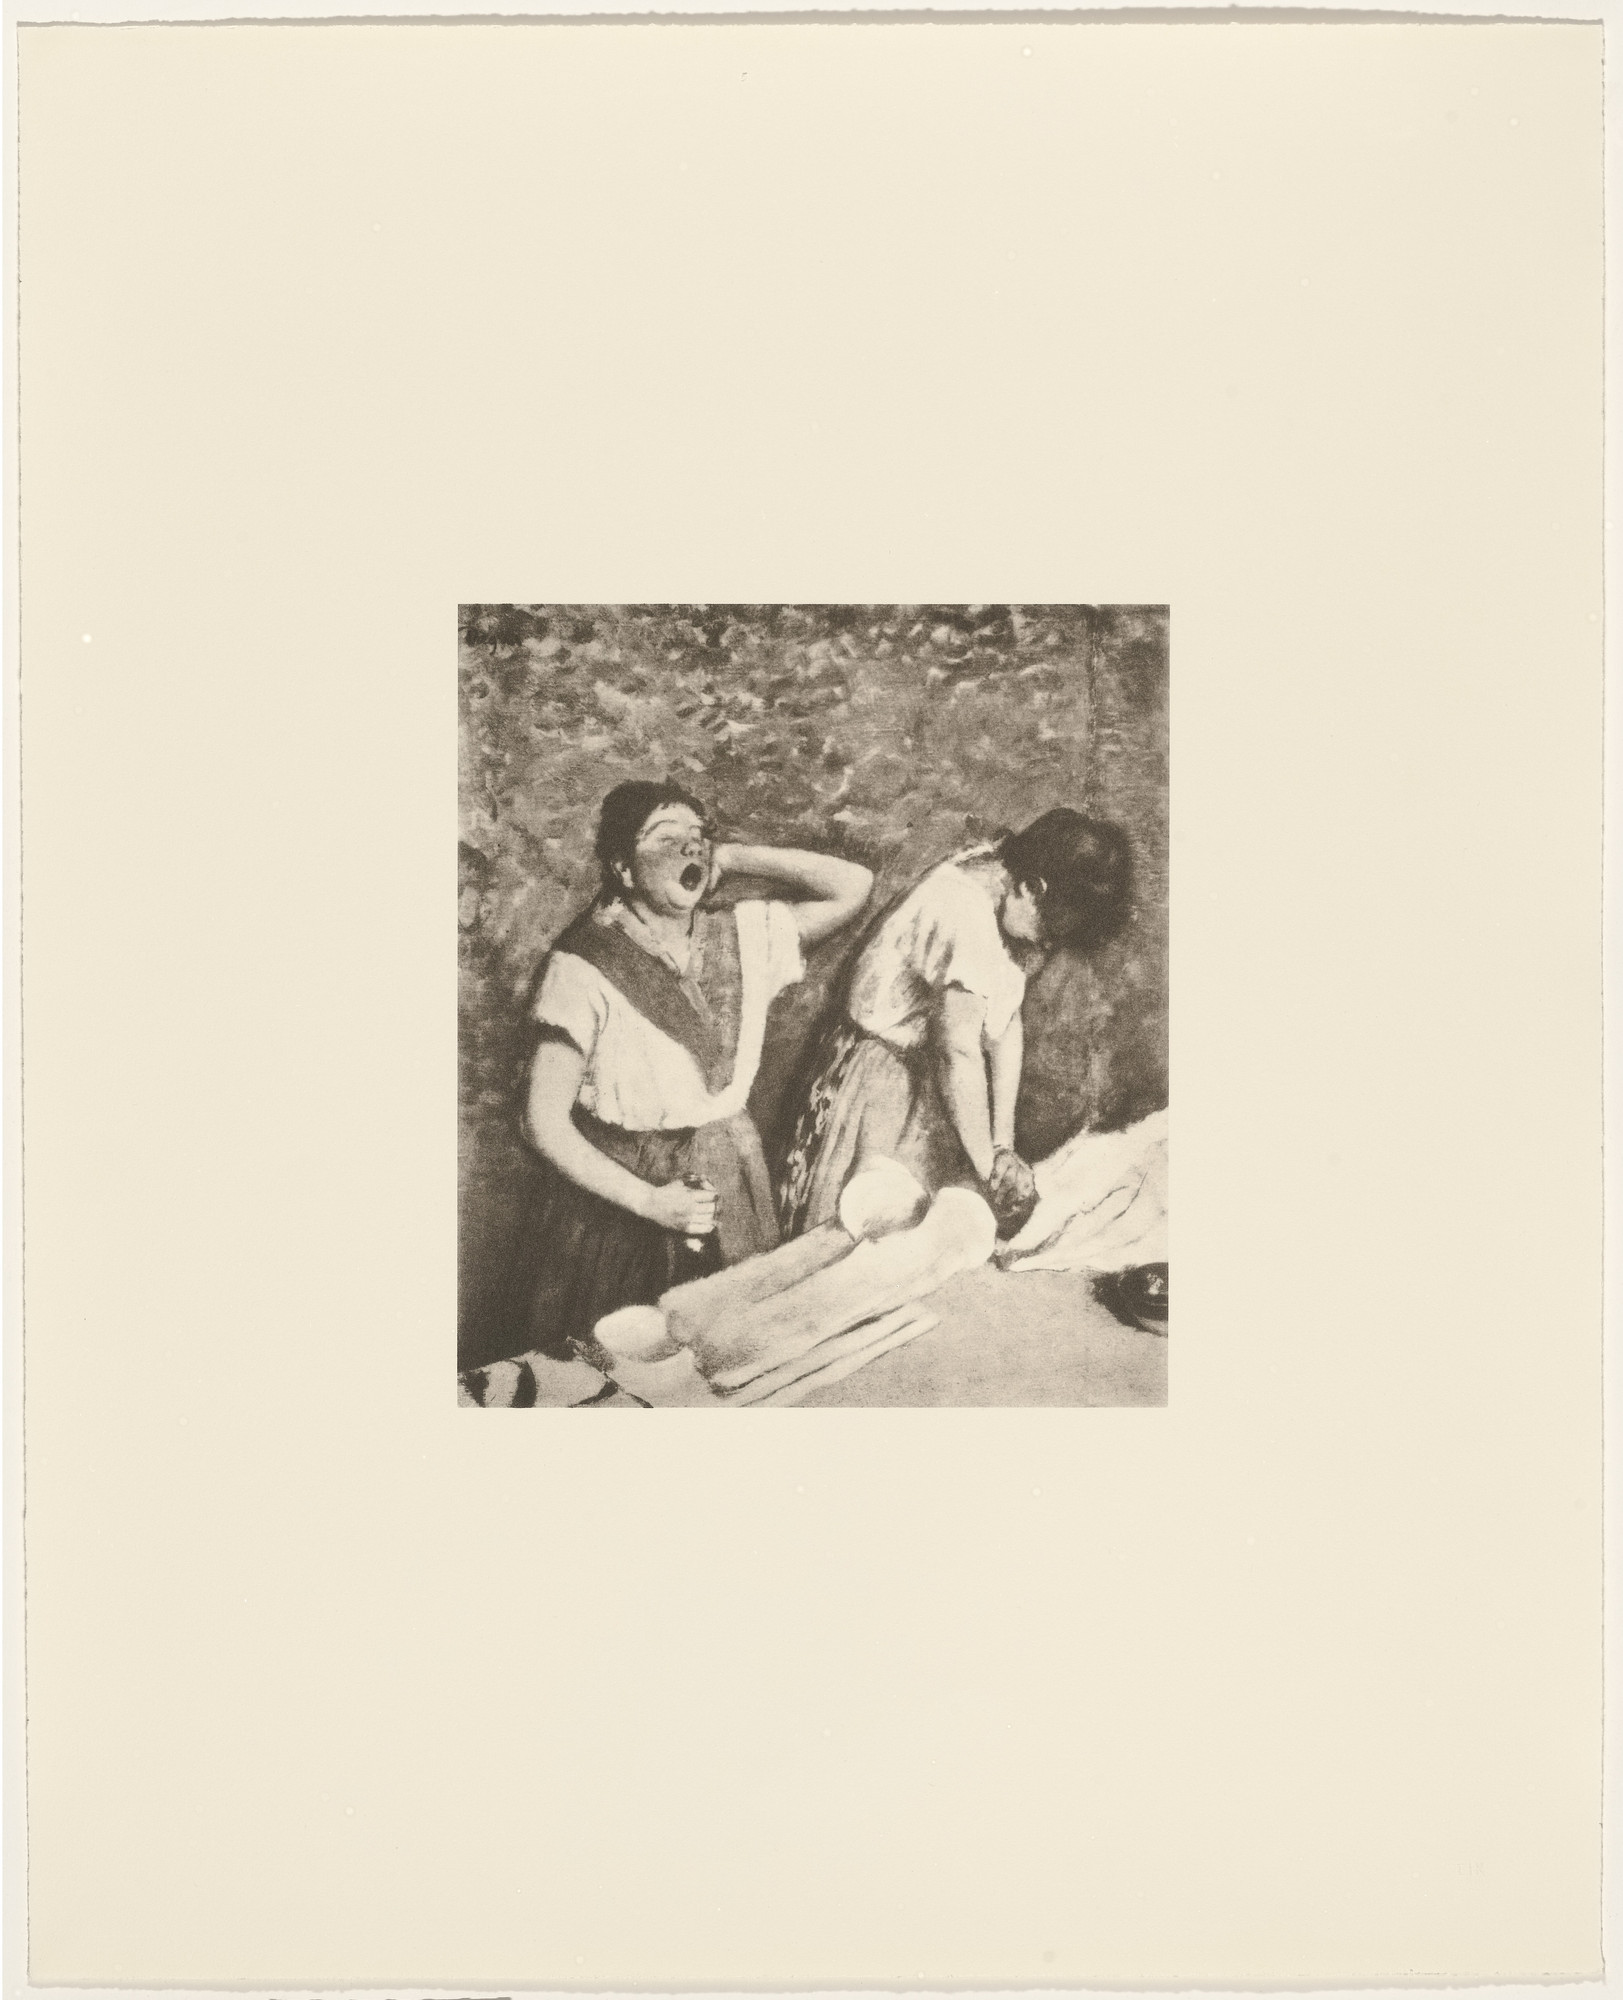 Sherrie Levine. Untitled from After Edgar Degas. 1987